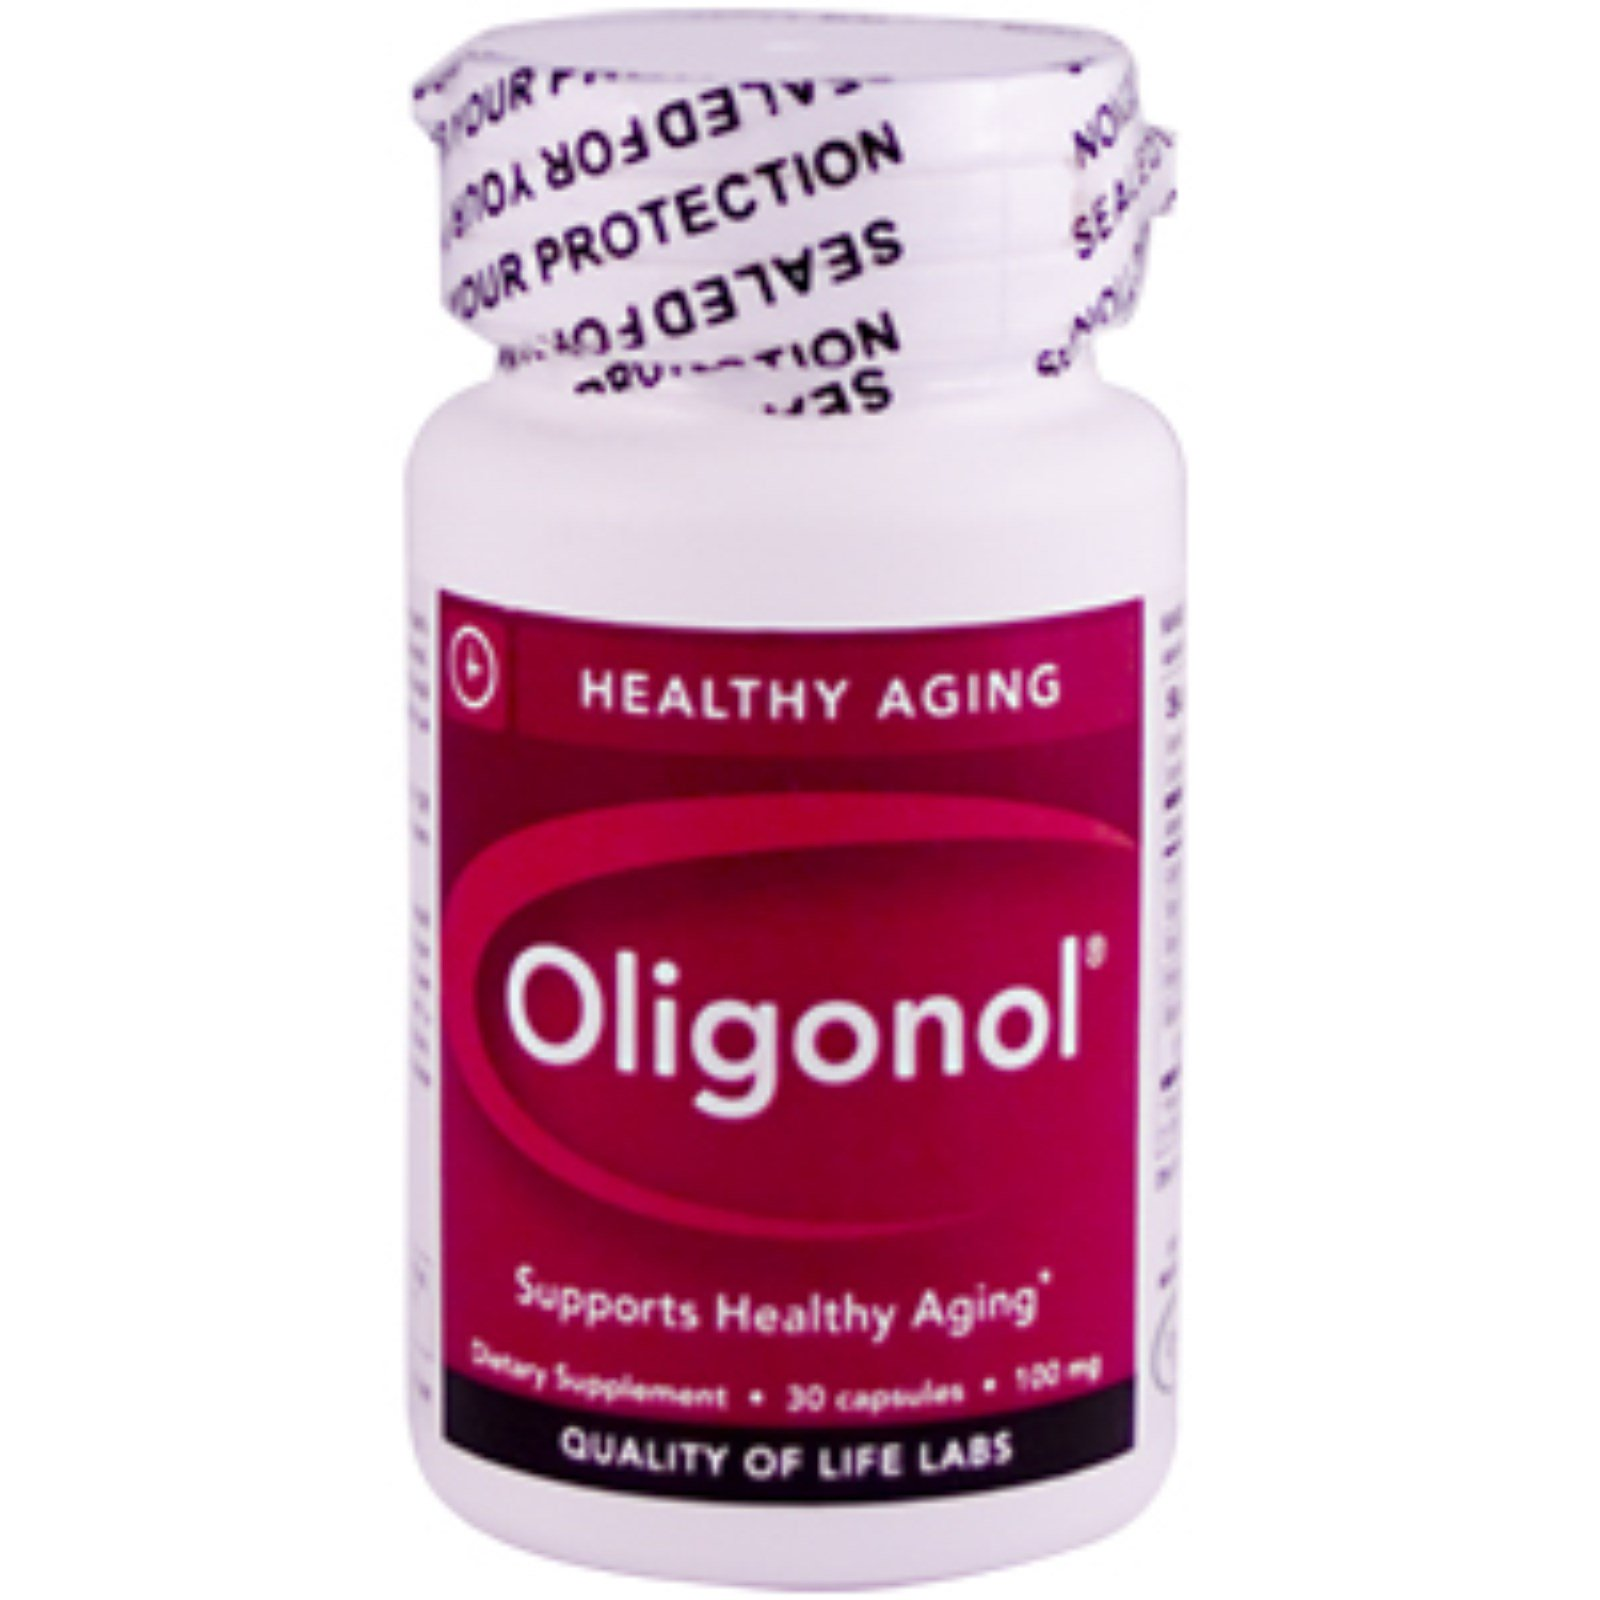 Forum on this topic: Oligonol Health Benefits and Uses, oligonol-health-benefits-and-uses/